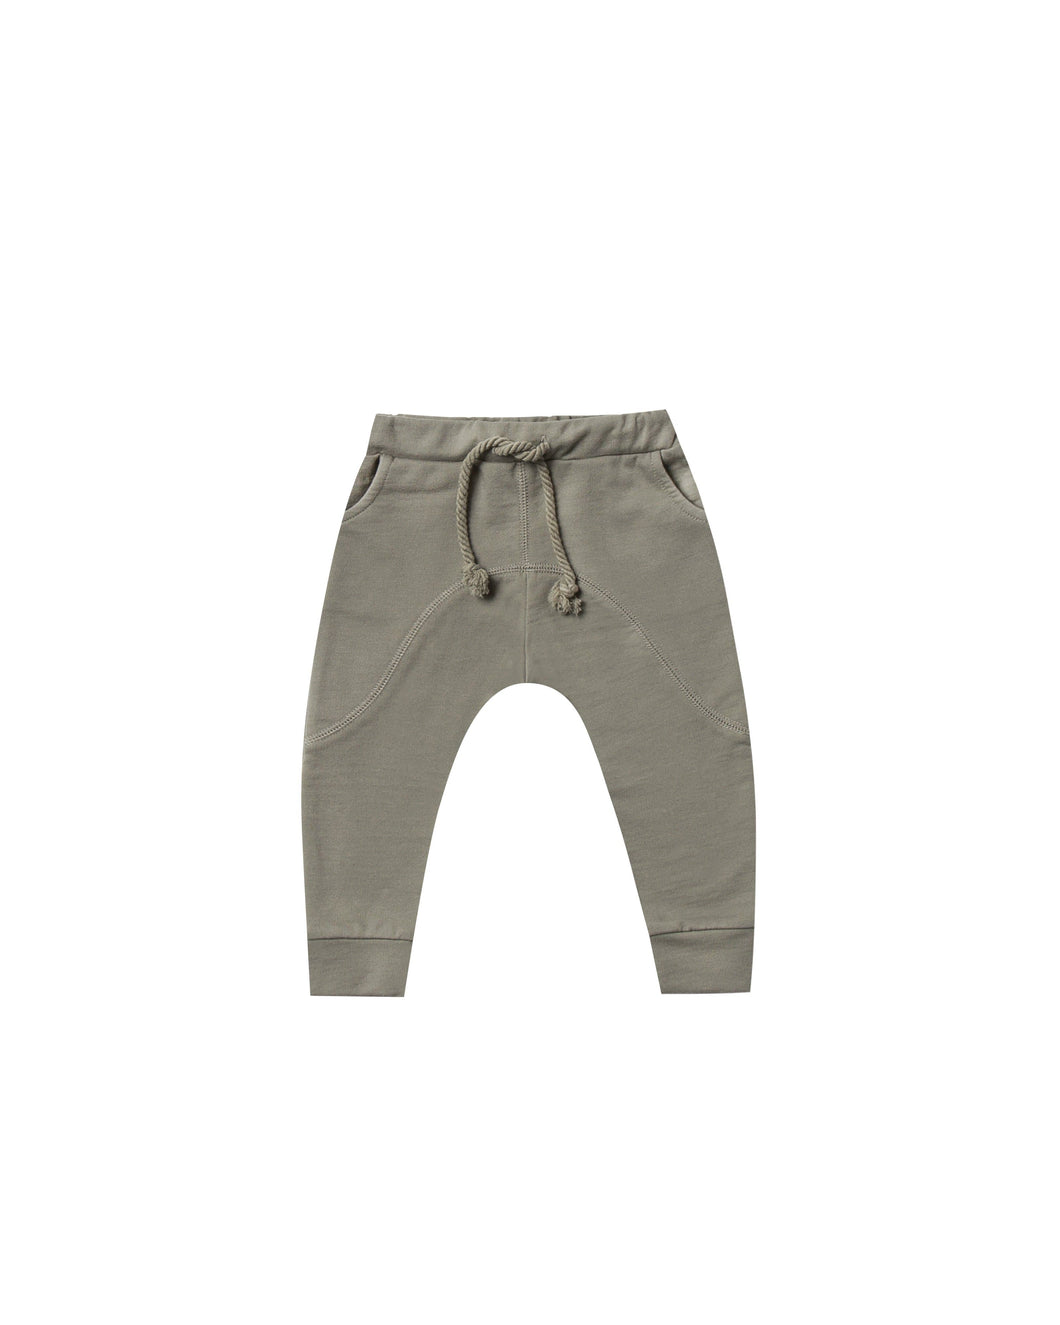 James Pants in Olive - WildLittleFawns